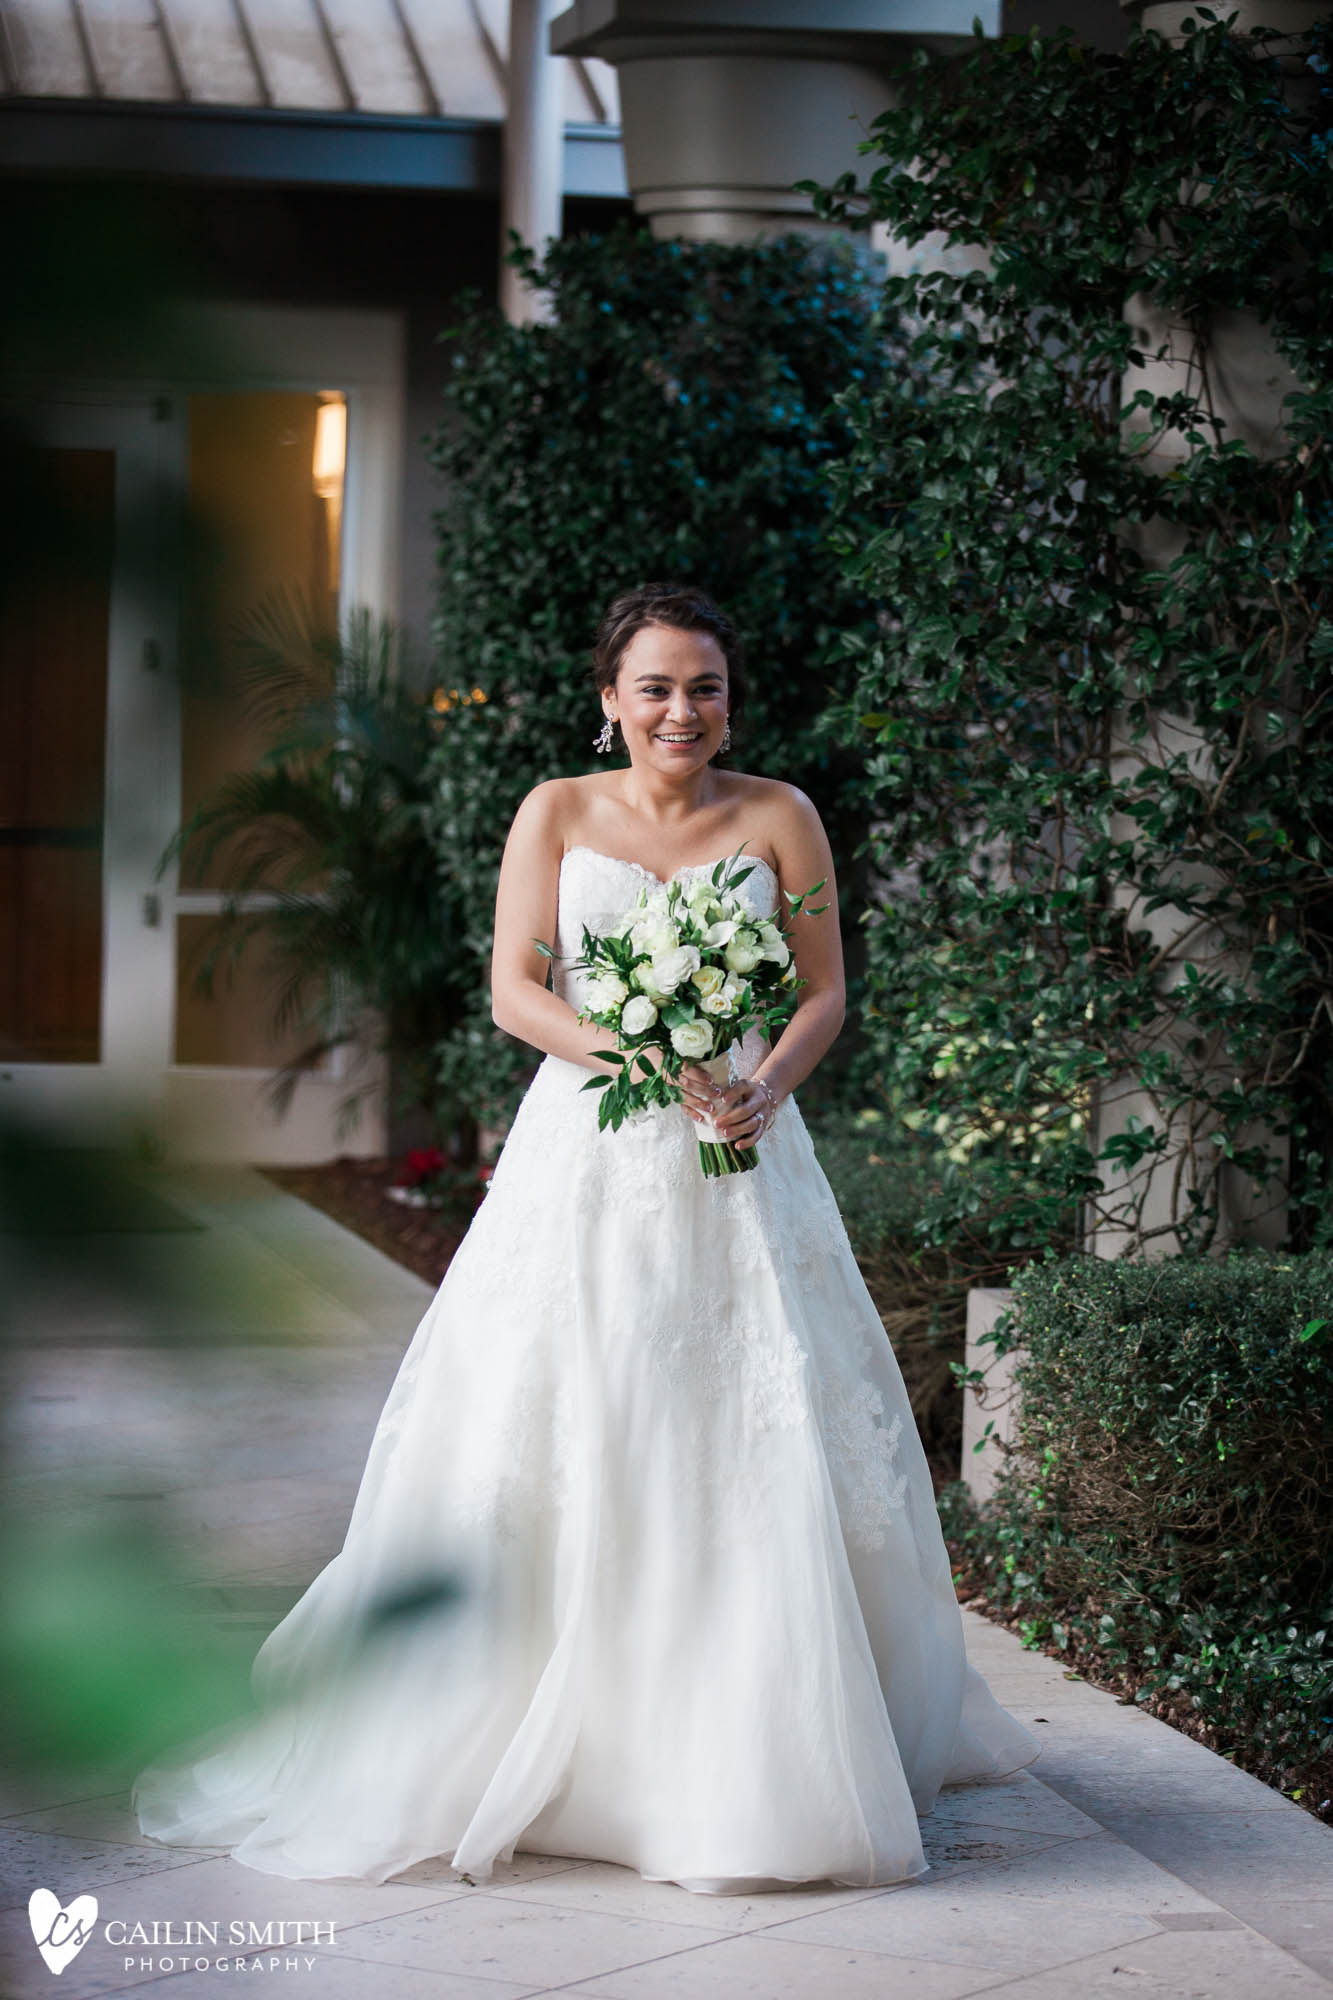 Hallie_Ari_Ritz_Carlton_Amelia_Island_Wedding_Photography_0026.jpg